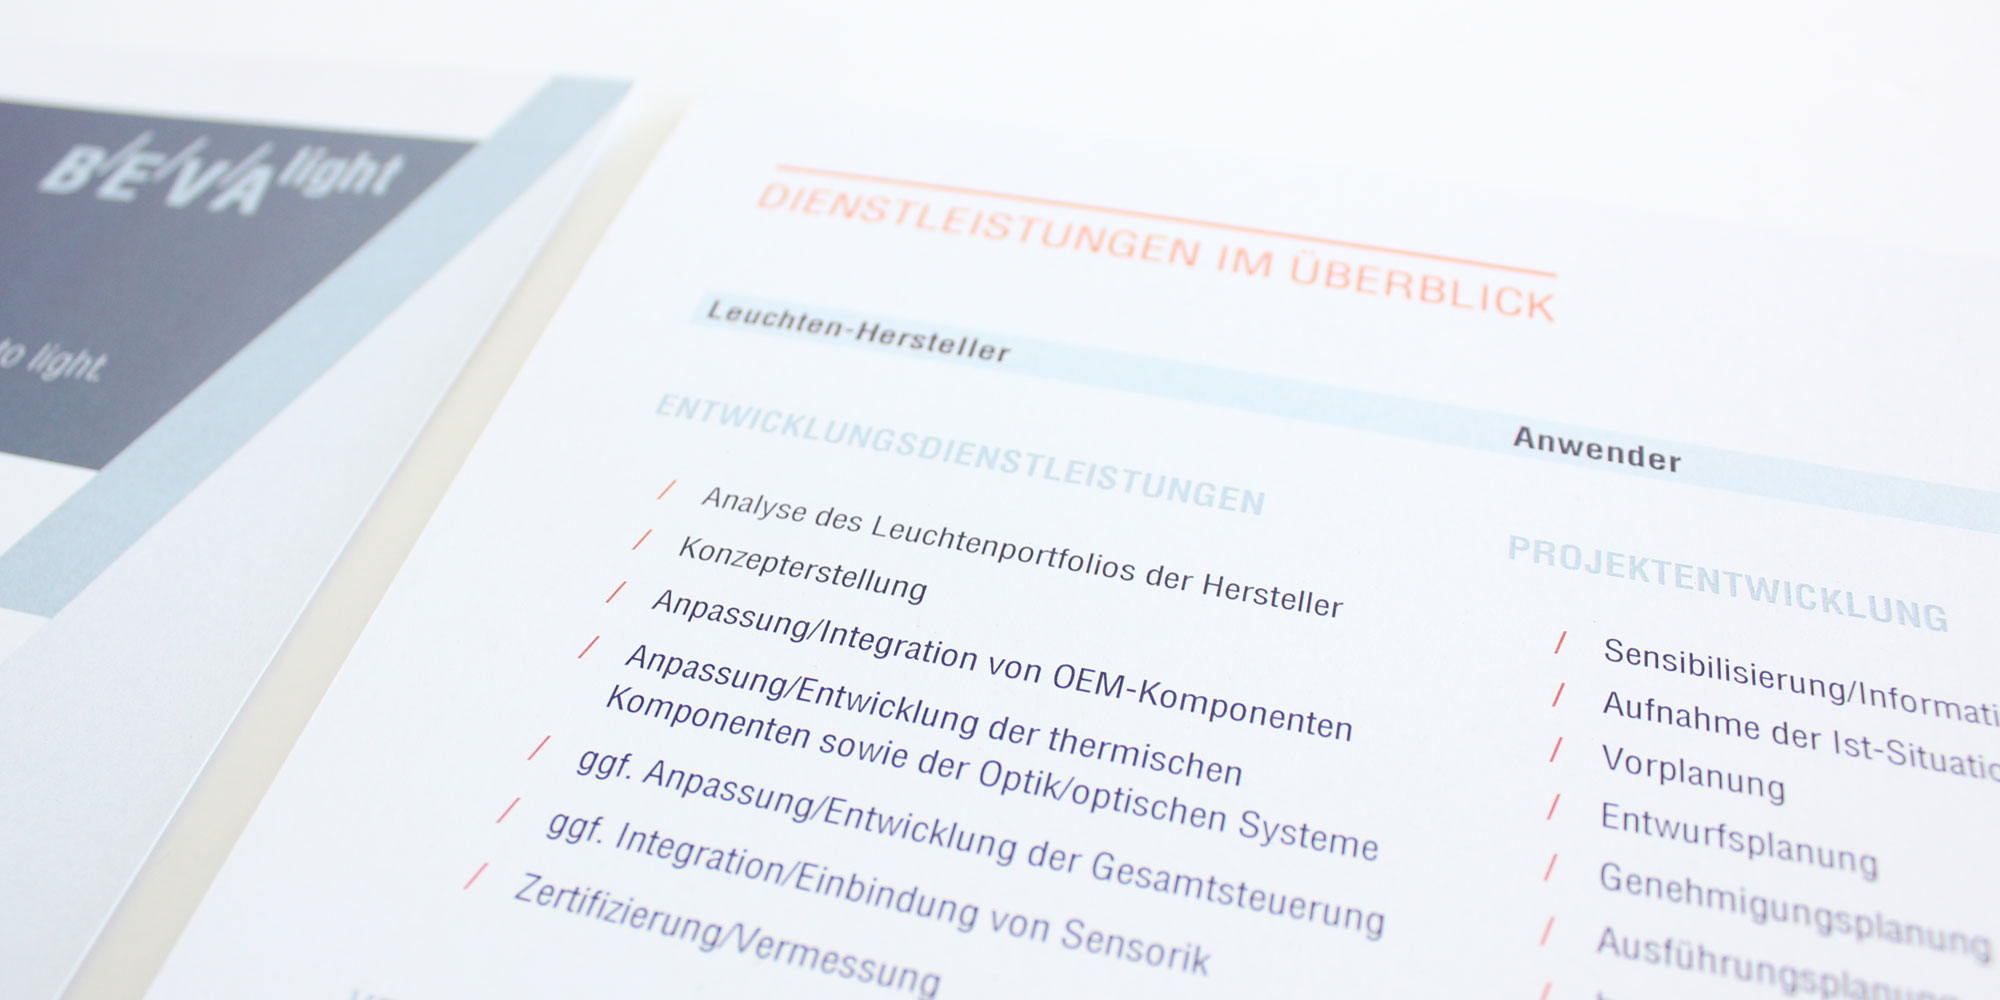 Corporate Design - Produktliteratur - BEVAlight